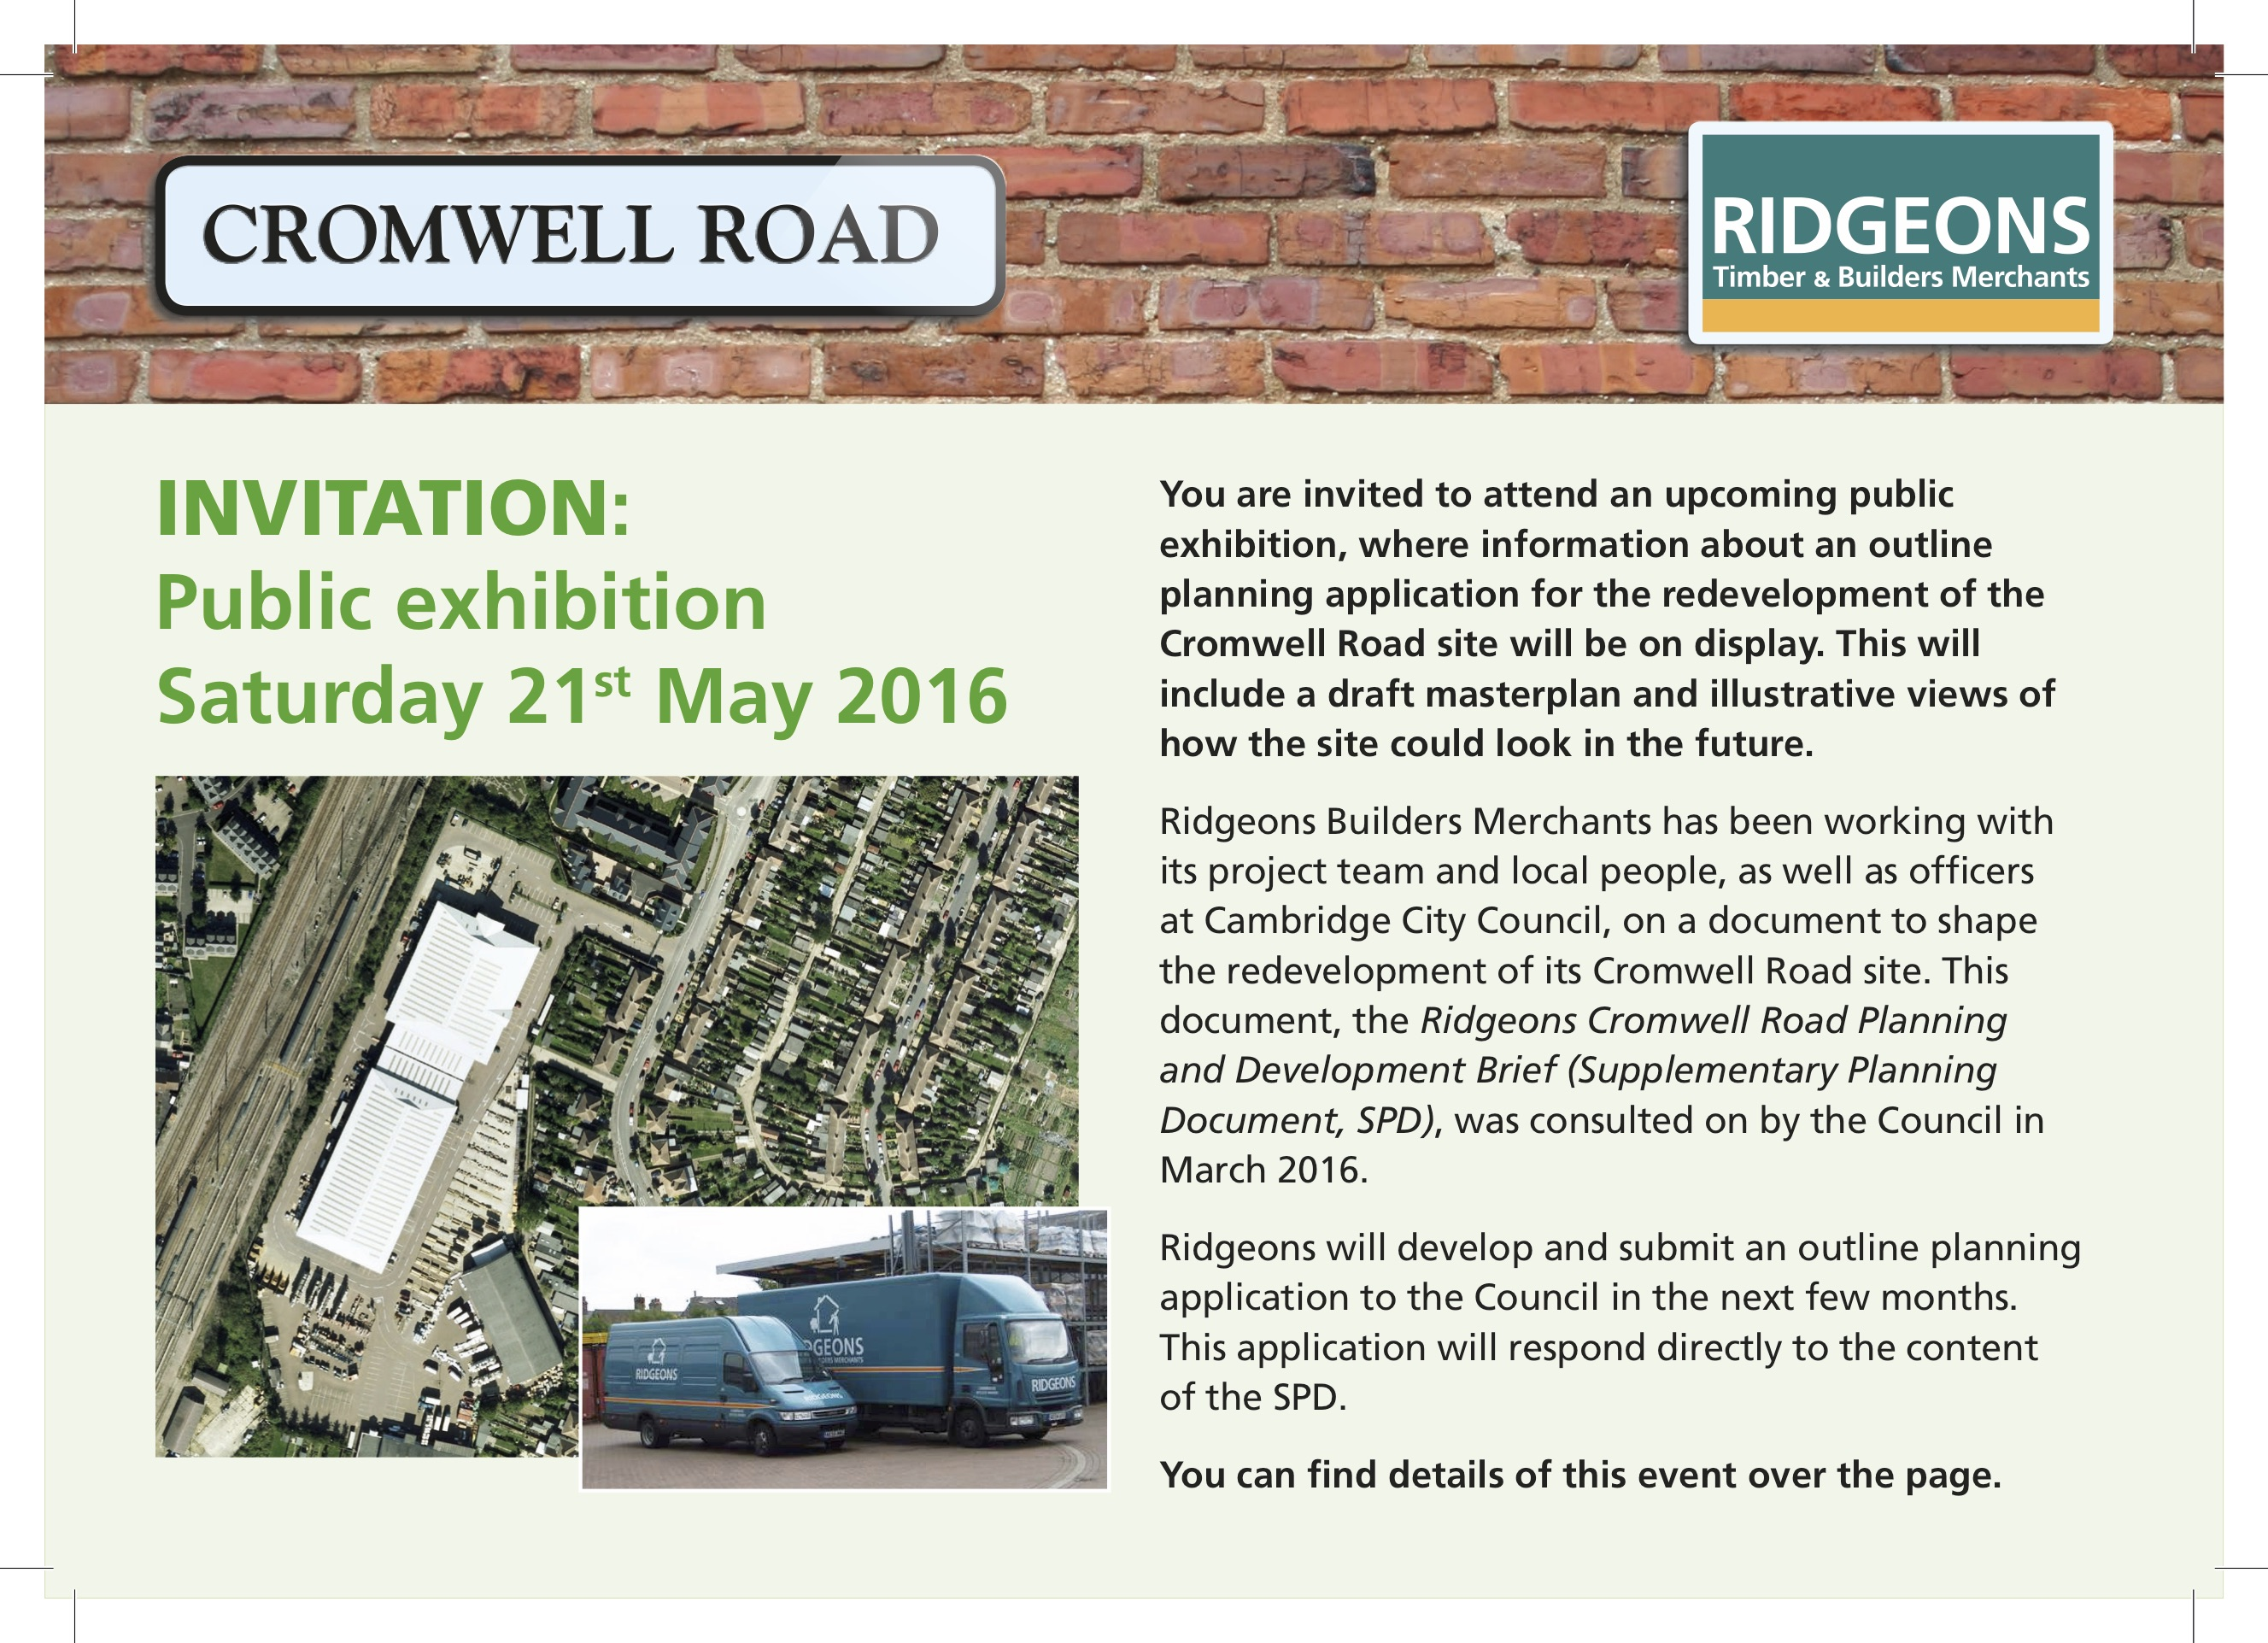 Cromwell_Road_-_Public_Exhibition_Flyer_-_10052016_2.jpg